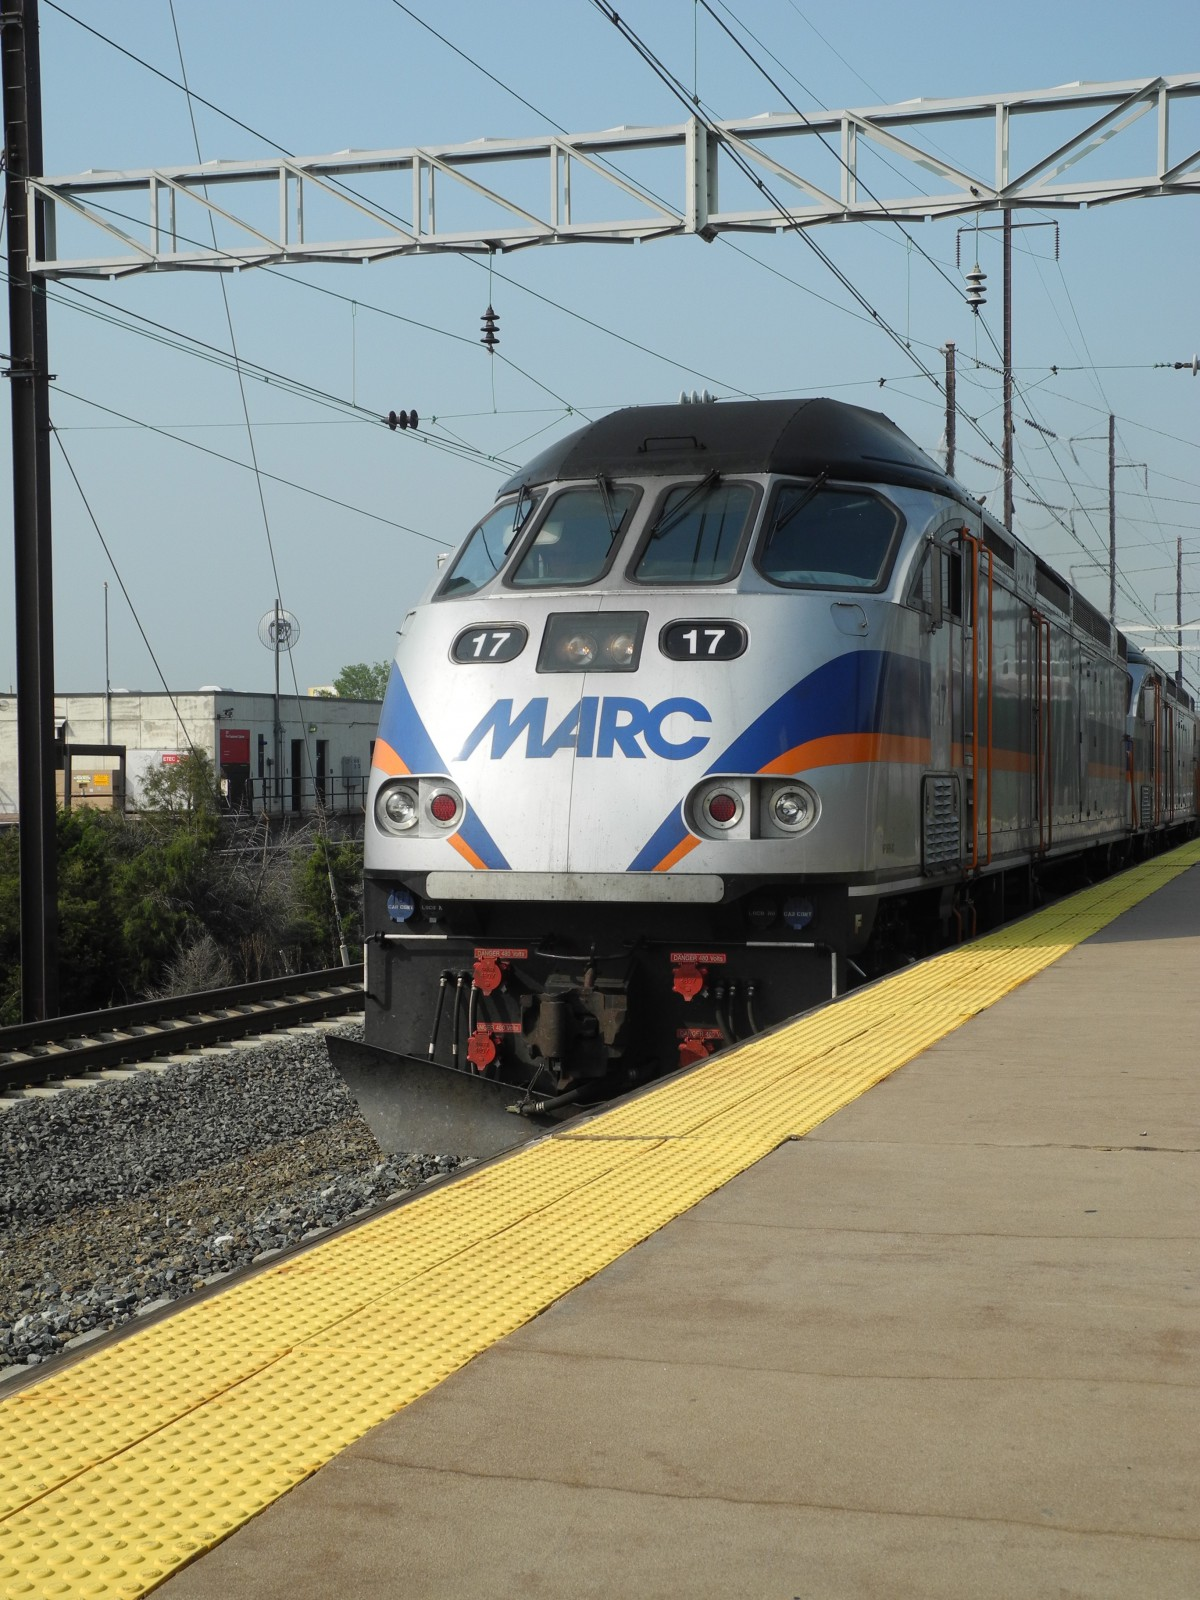 marc's new brunswick schedule worsens service for many – greater